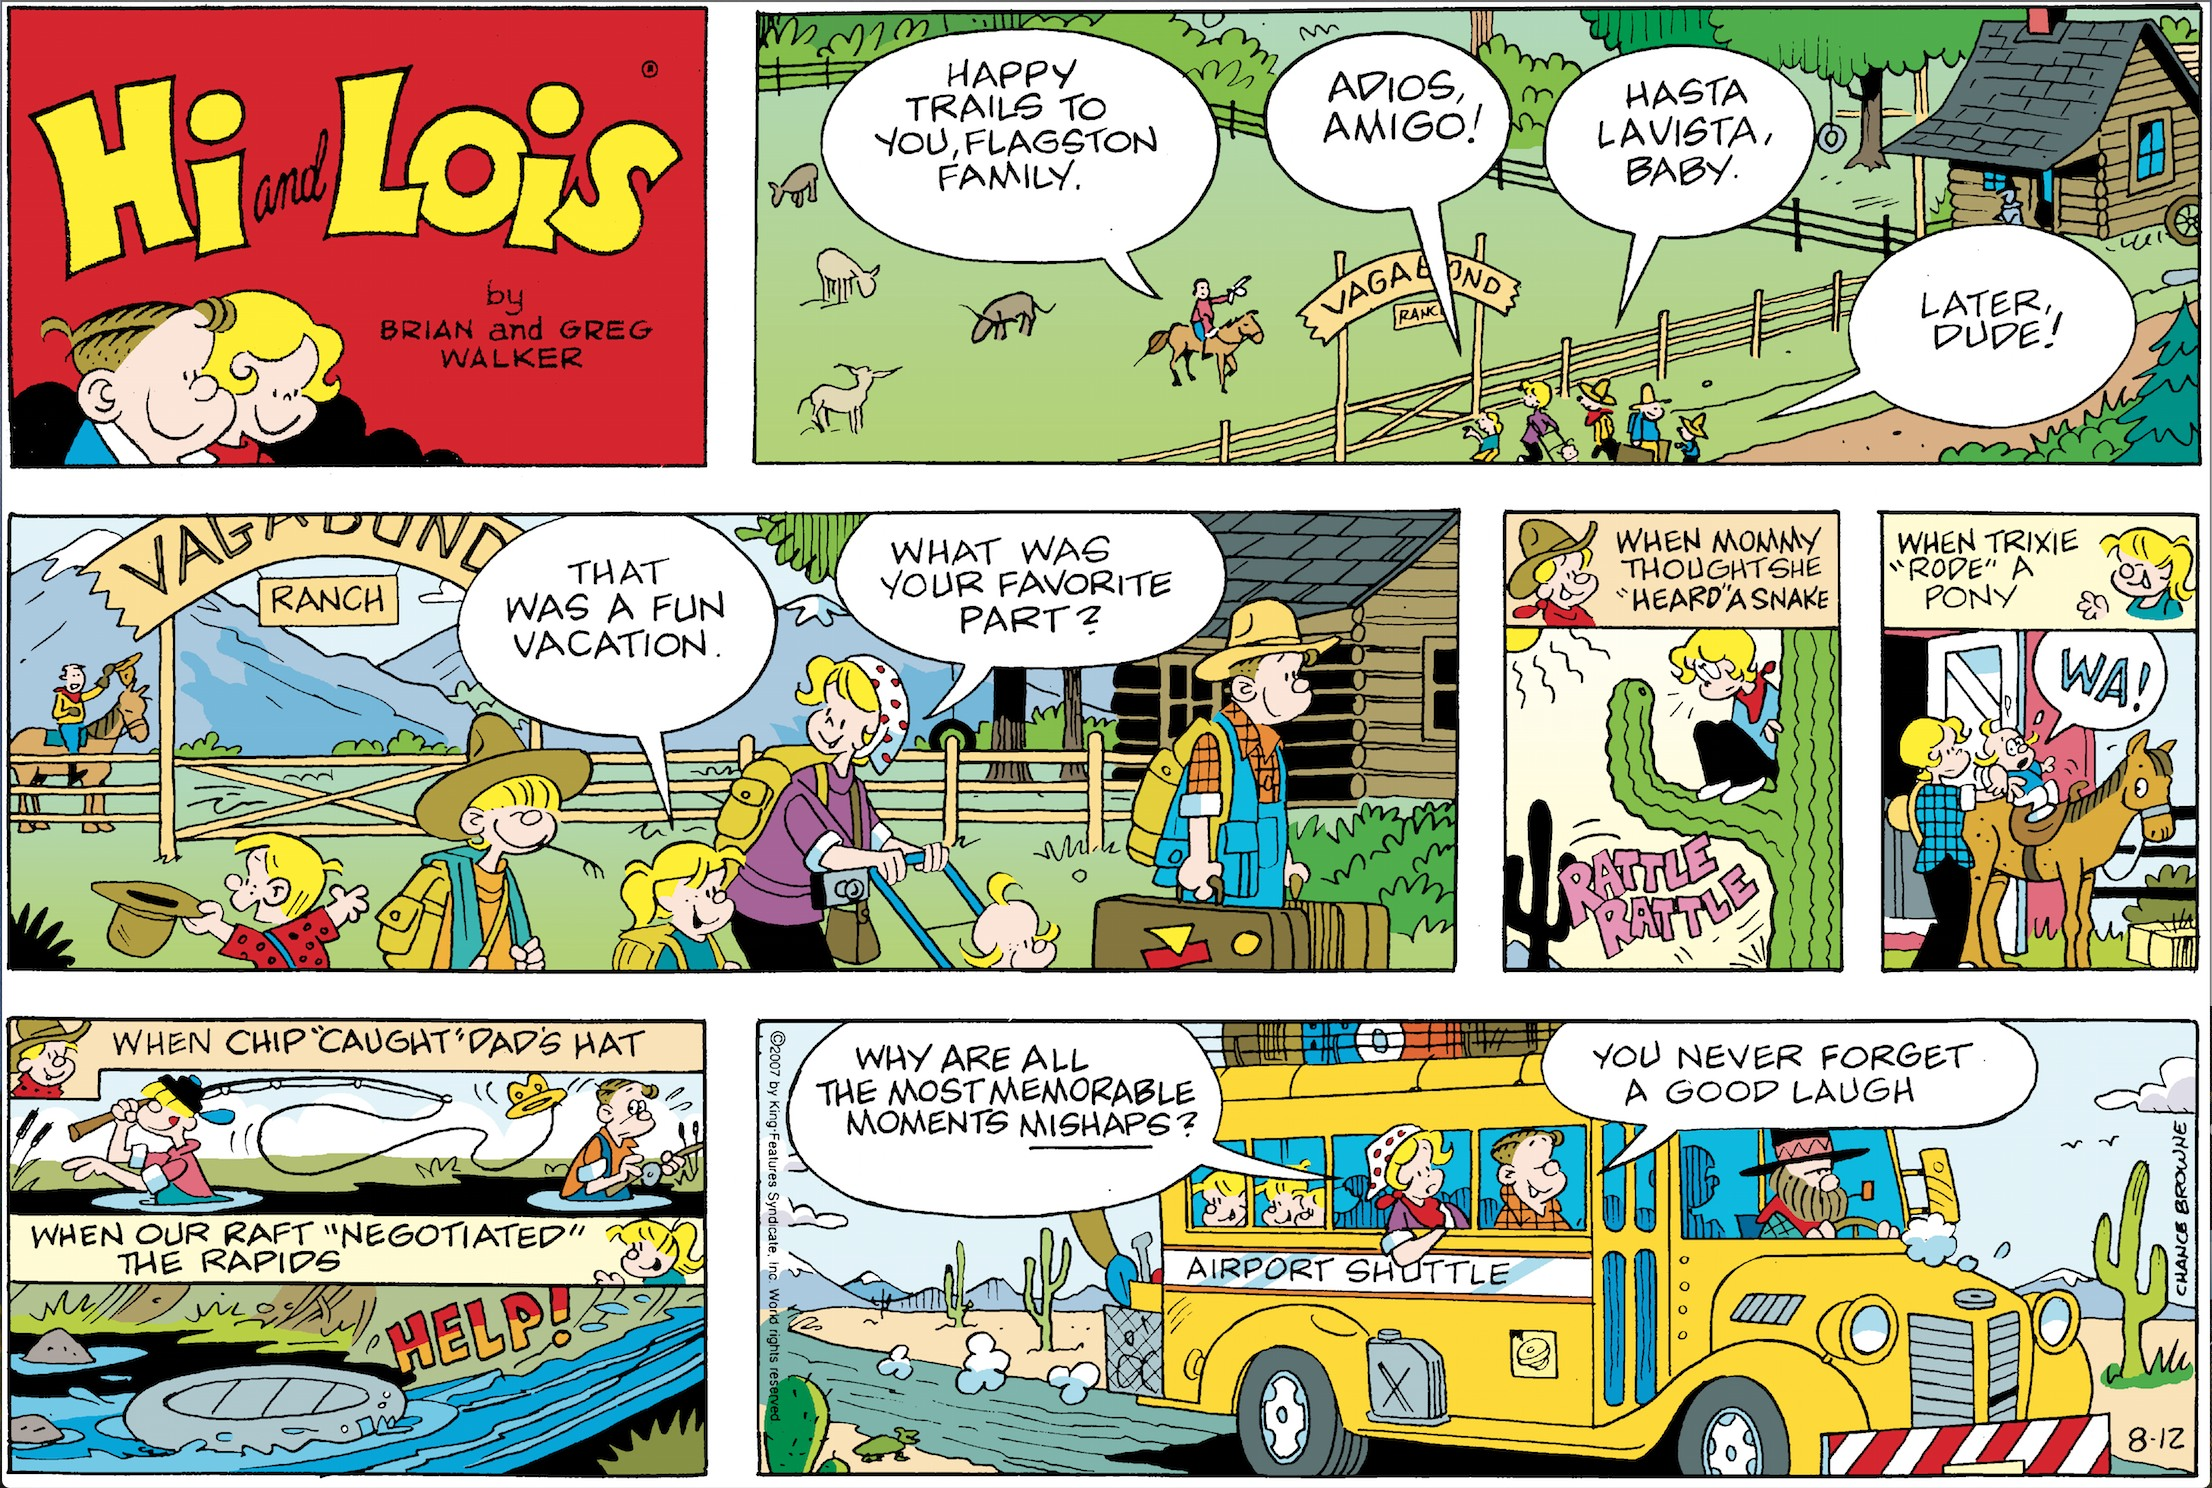 Hi and Lois Sunday page, August 12, 2007.